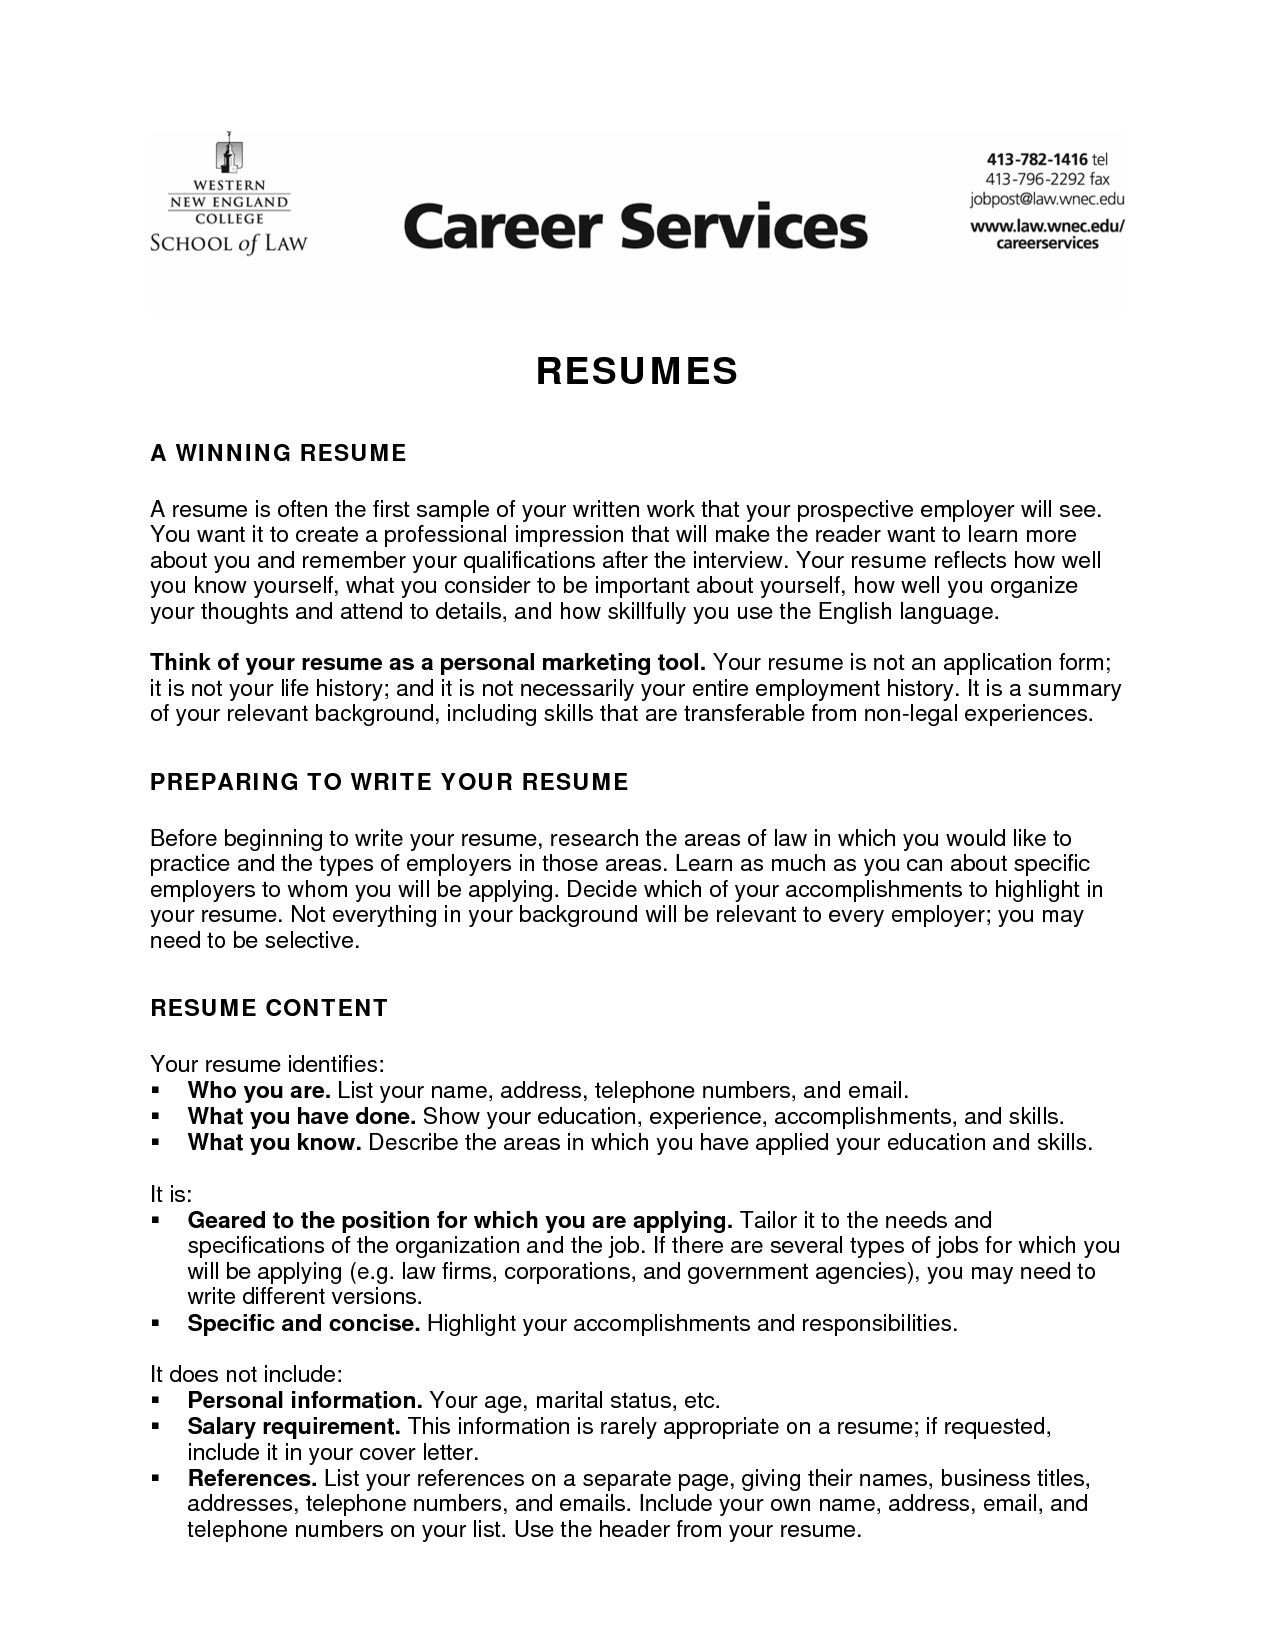 Resume Objective Samples for College Students God Objective for Resume Colege Student